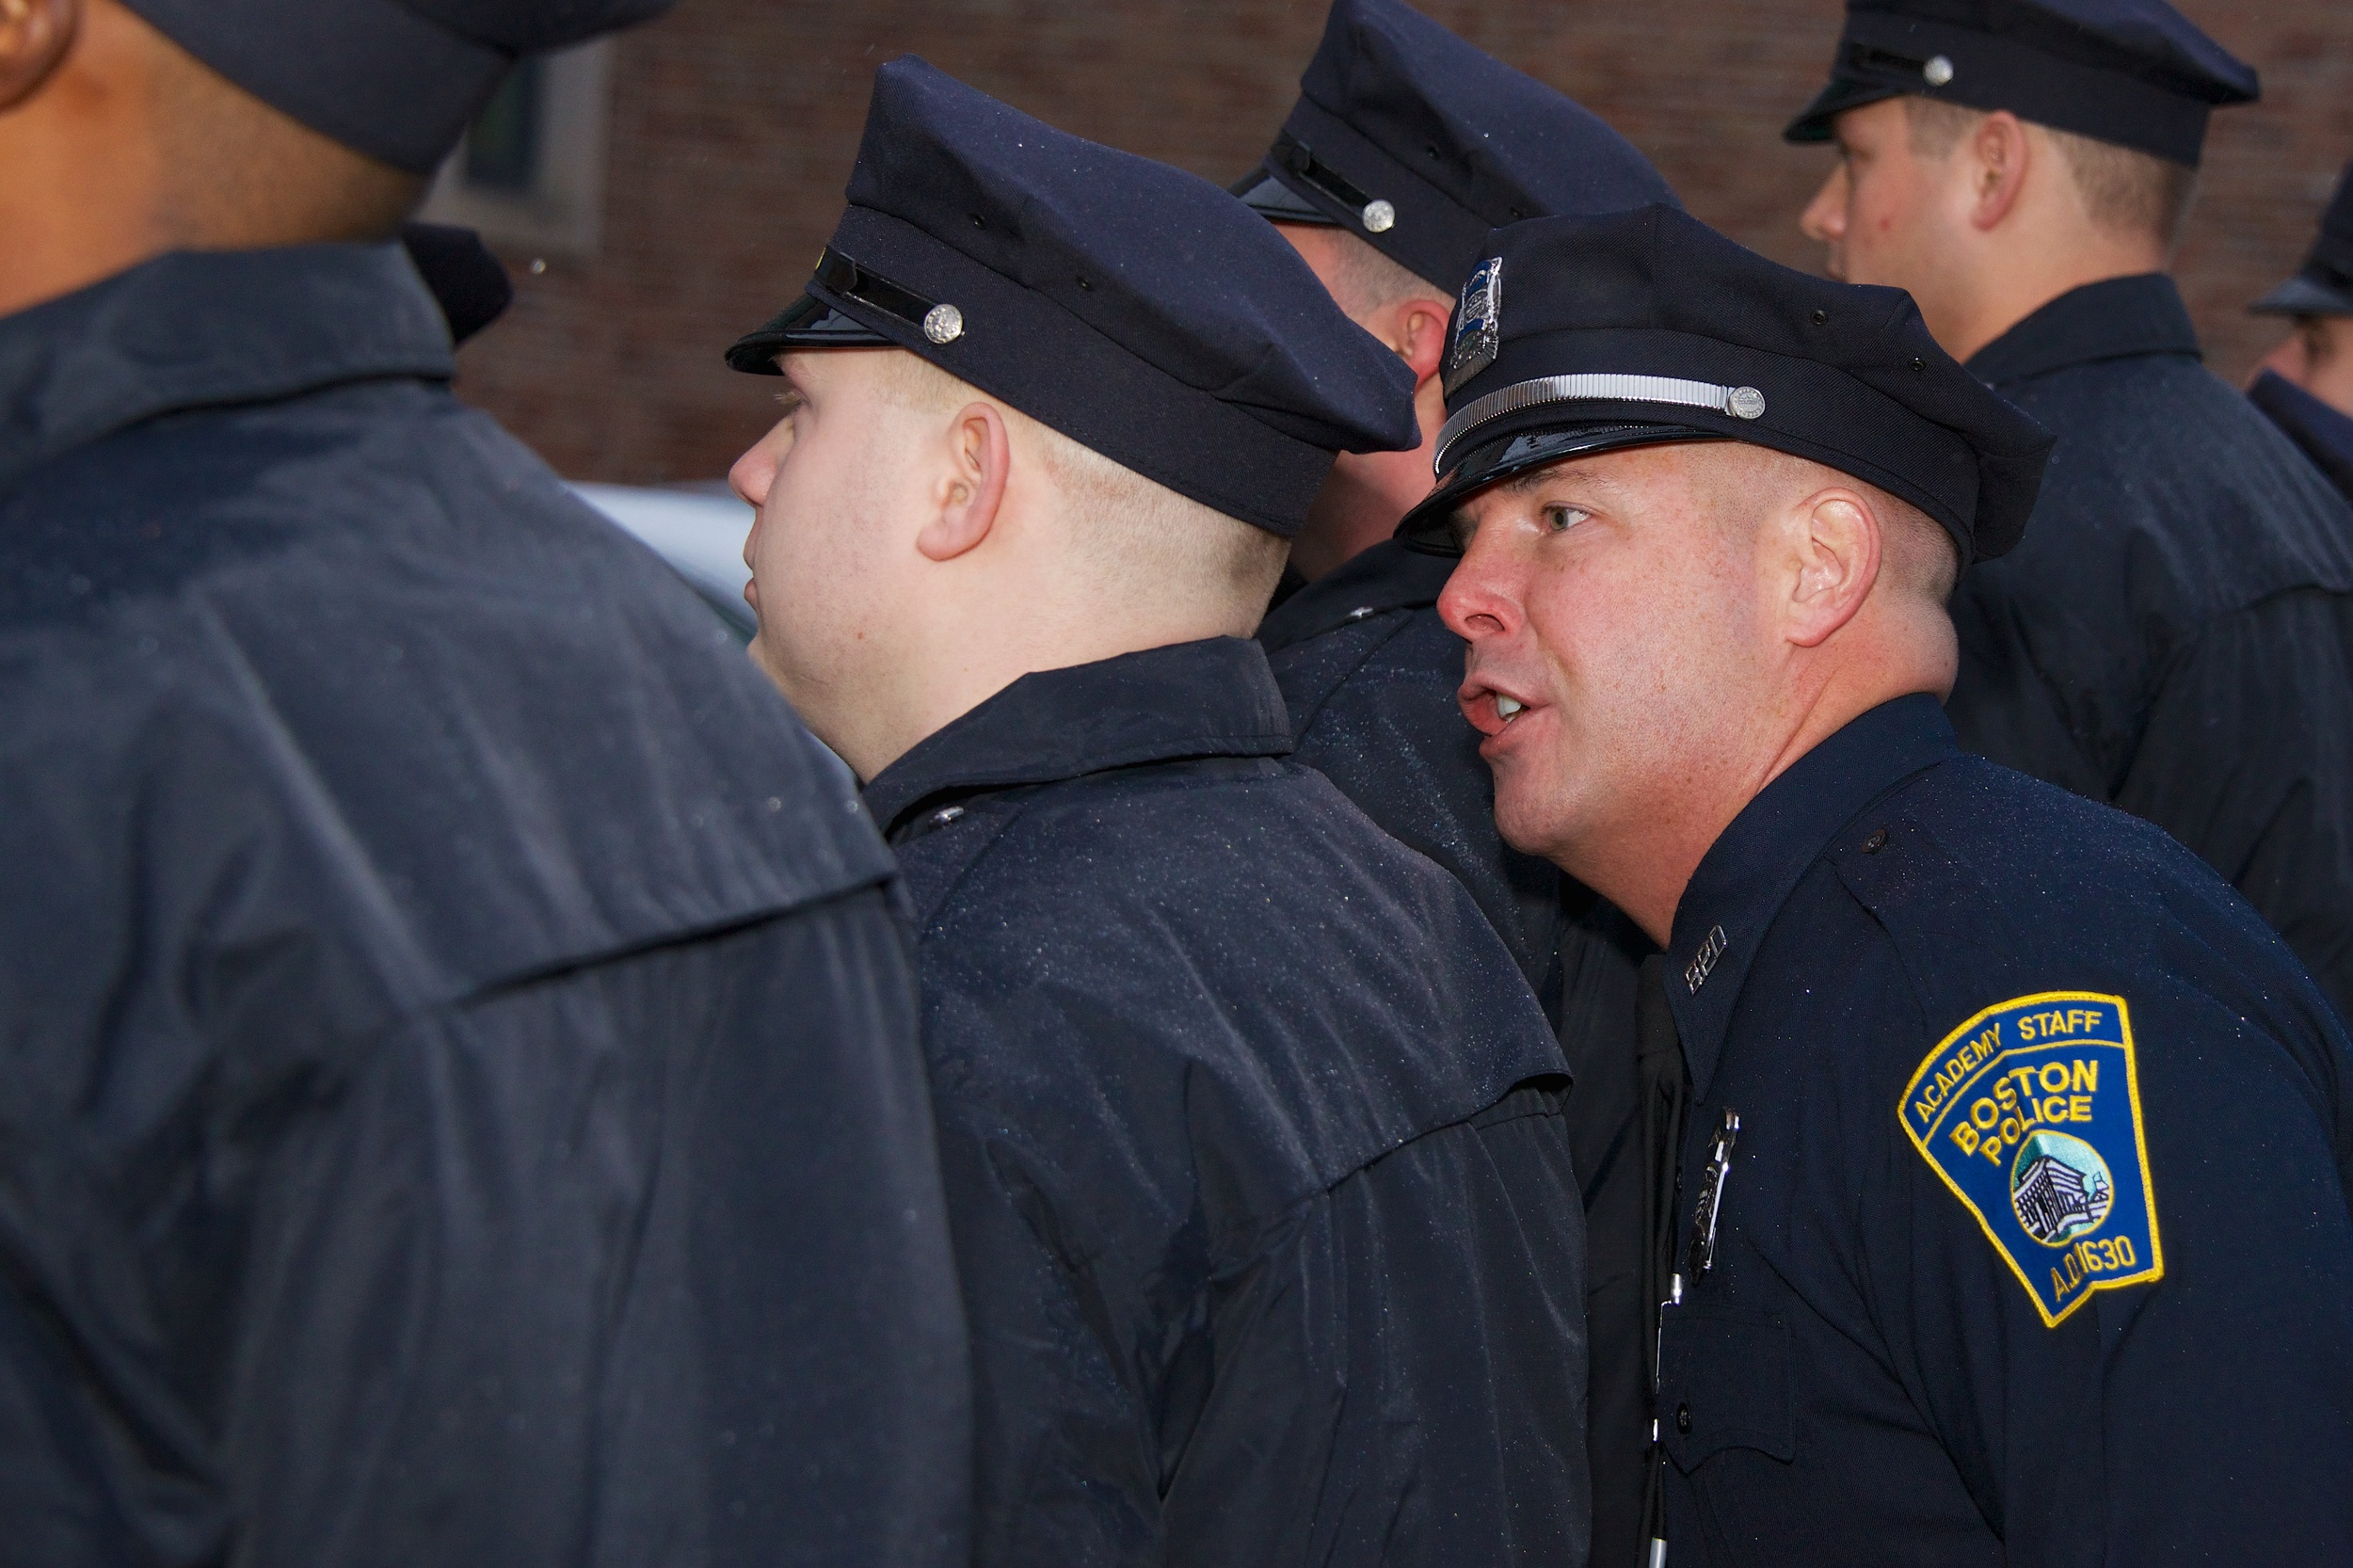 Police Officer John Ezekiel addressing members of Recruit Class 53-13 during the first week of Academy Training.